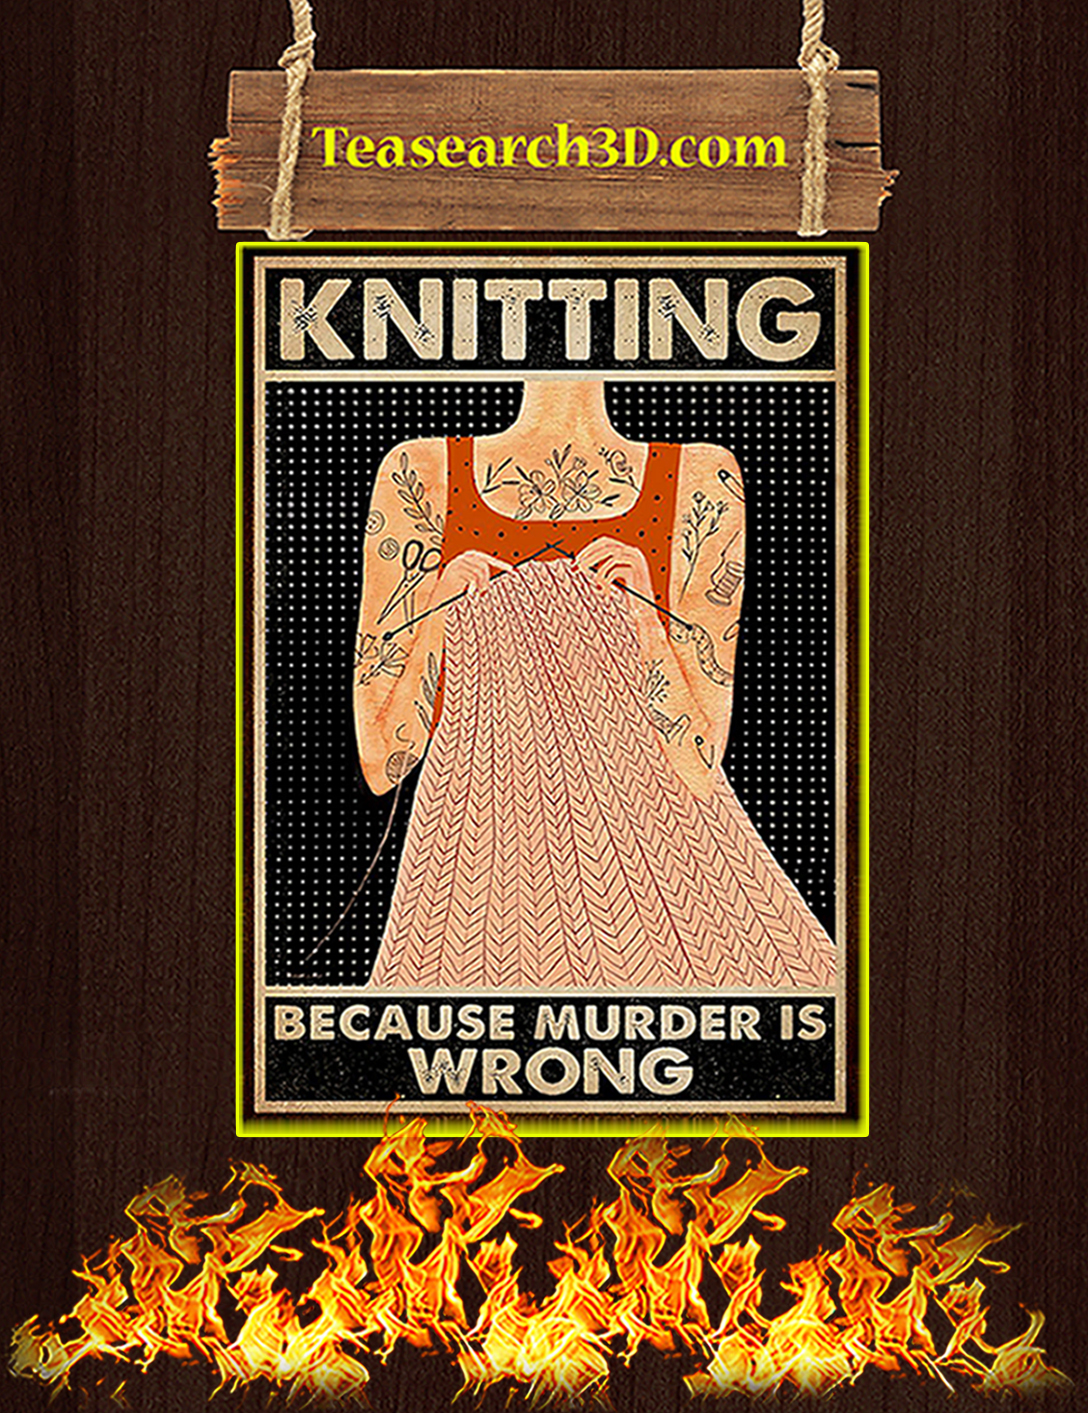 Knitting because murder is wrong poster A2